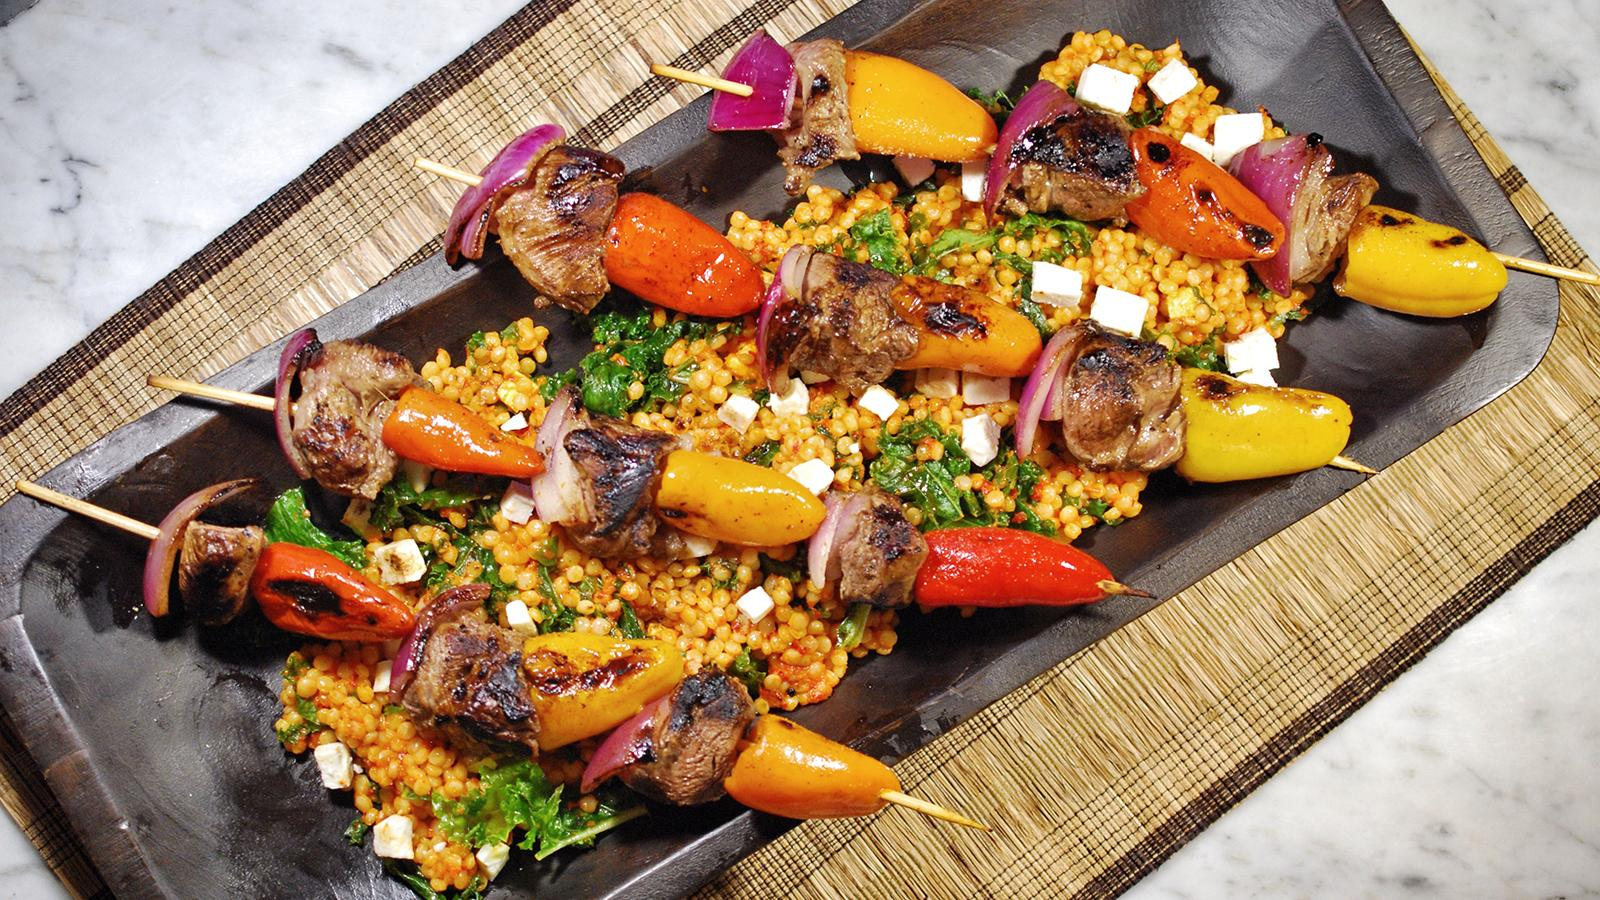 8 & $20: Lamb Kebabs With Israeli Couscous Salad